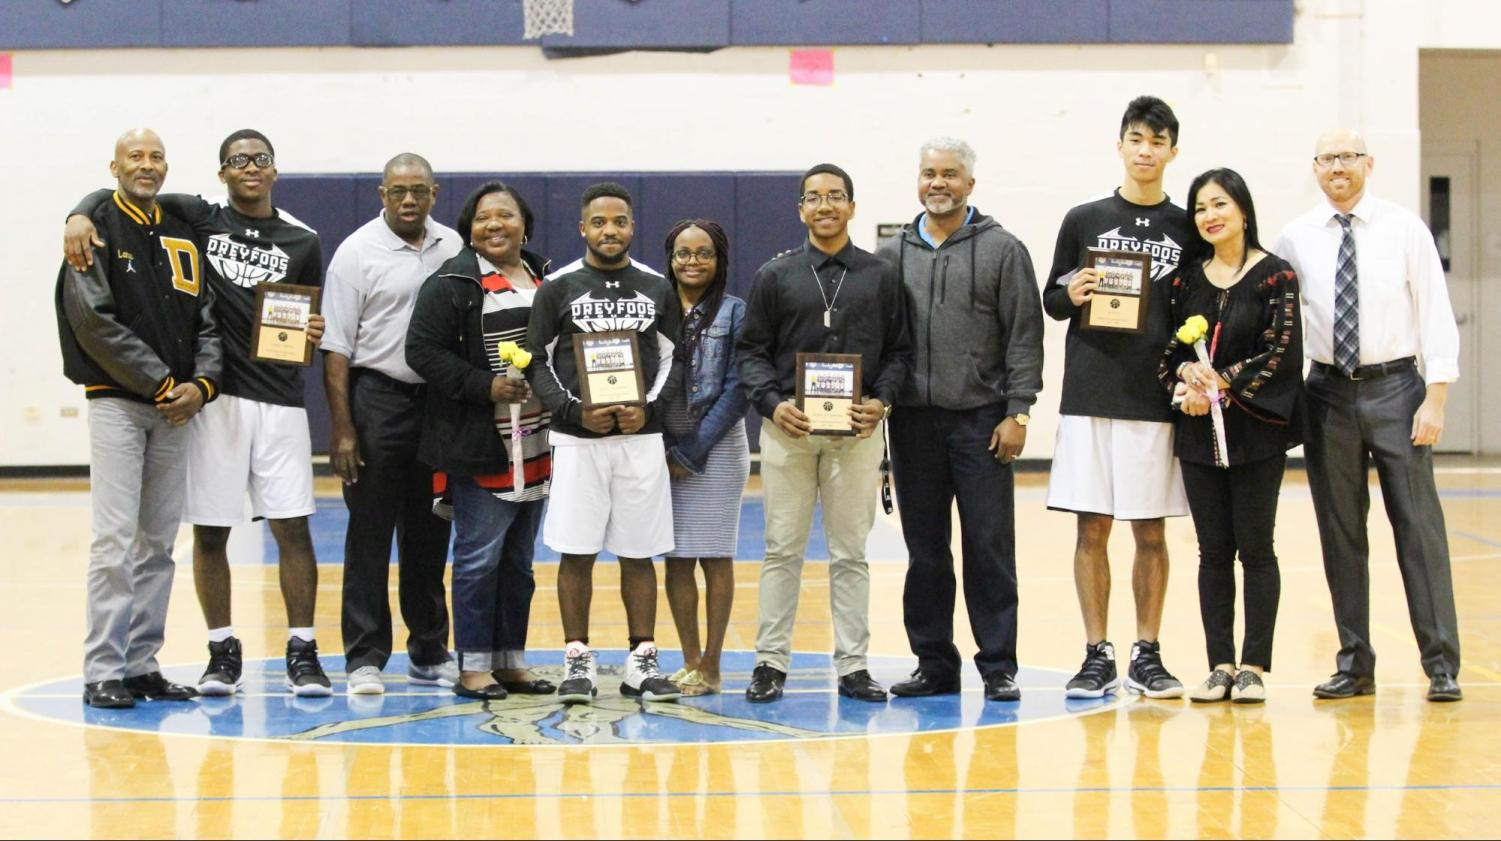 "(Players from left to right: visual senior Lance Carter, vocal senior Jaylen Thompson, visual senior Nickolas Pressoir, and strings senior Alan Le) The seniors of the basketball team stand with parents at their last home game of the year on Jan. 24. Basketball coach and math teacher Matthew Vaughan (far right) smiles as he looks back on the growth of the team this season. ""This is my first year coaching [the basketball team], so I had to earn their trust. But after our first win, things started to click with the team,"" Vaughan said. ""Every time we played [a team] for the second time this year, we have come back and done leaps and bounds better."""